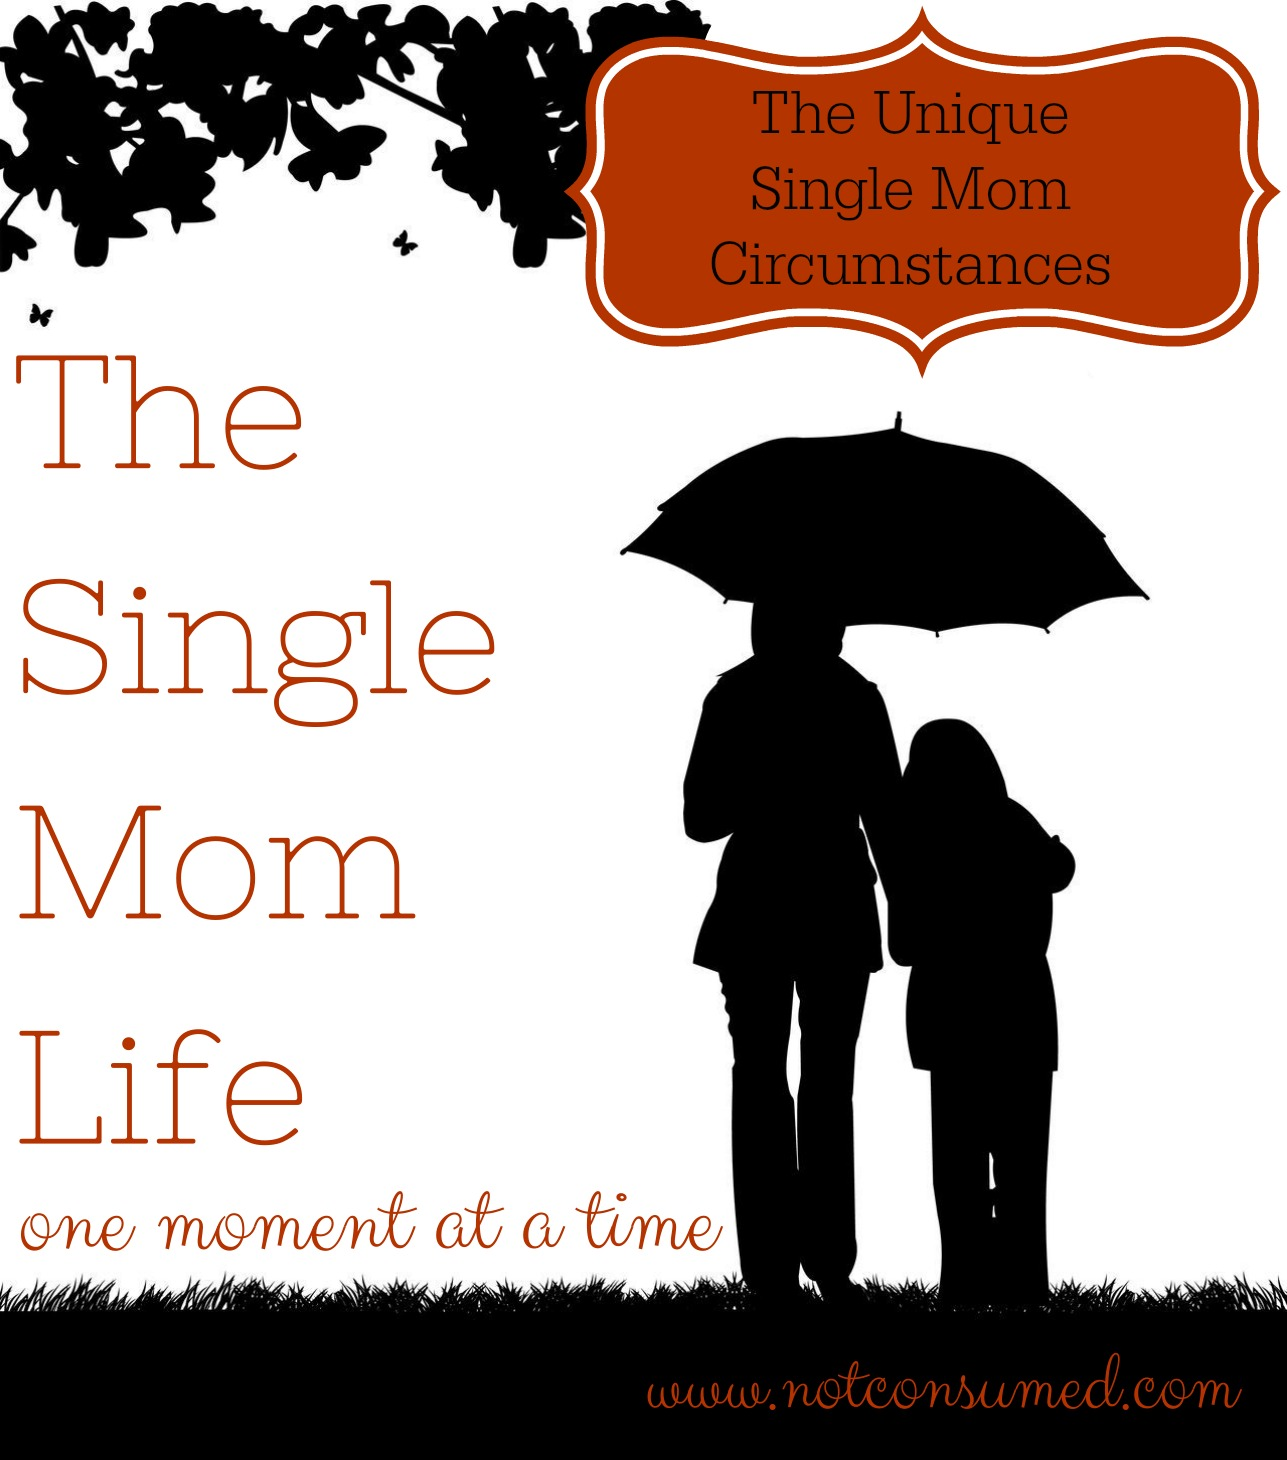 single moms and dating quotes Single mom quotes 54k likes share all your favorite quotes about being a single mom and taking care of your little darlings.